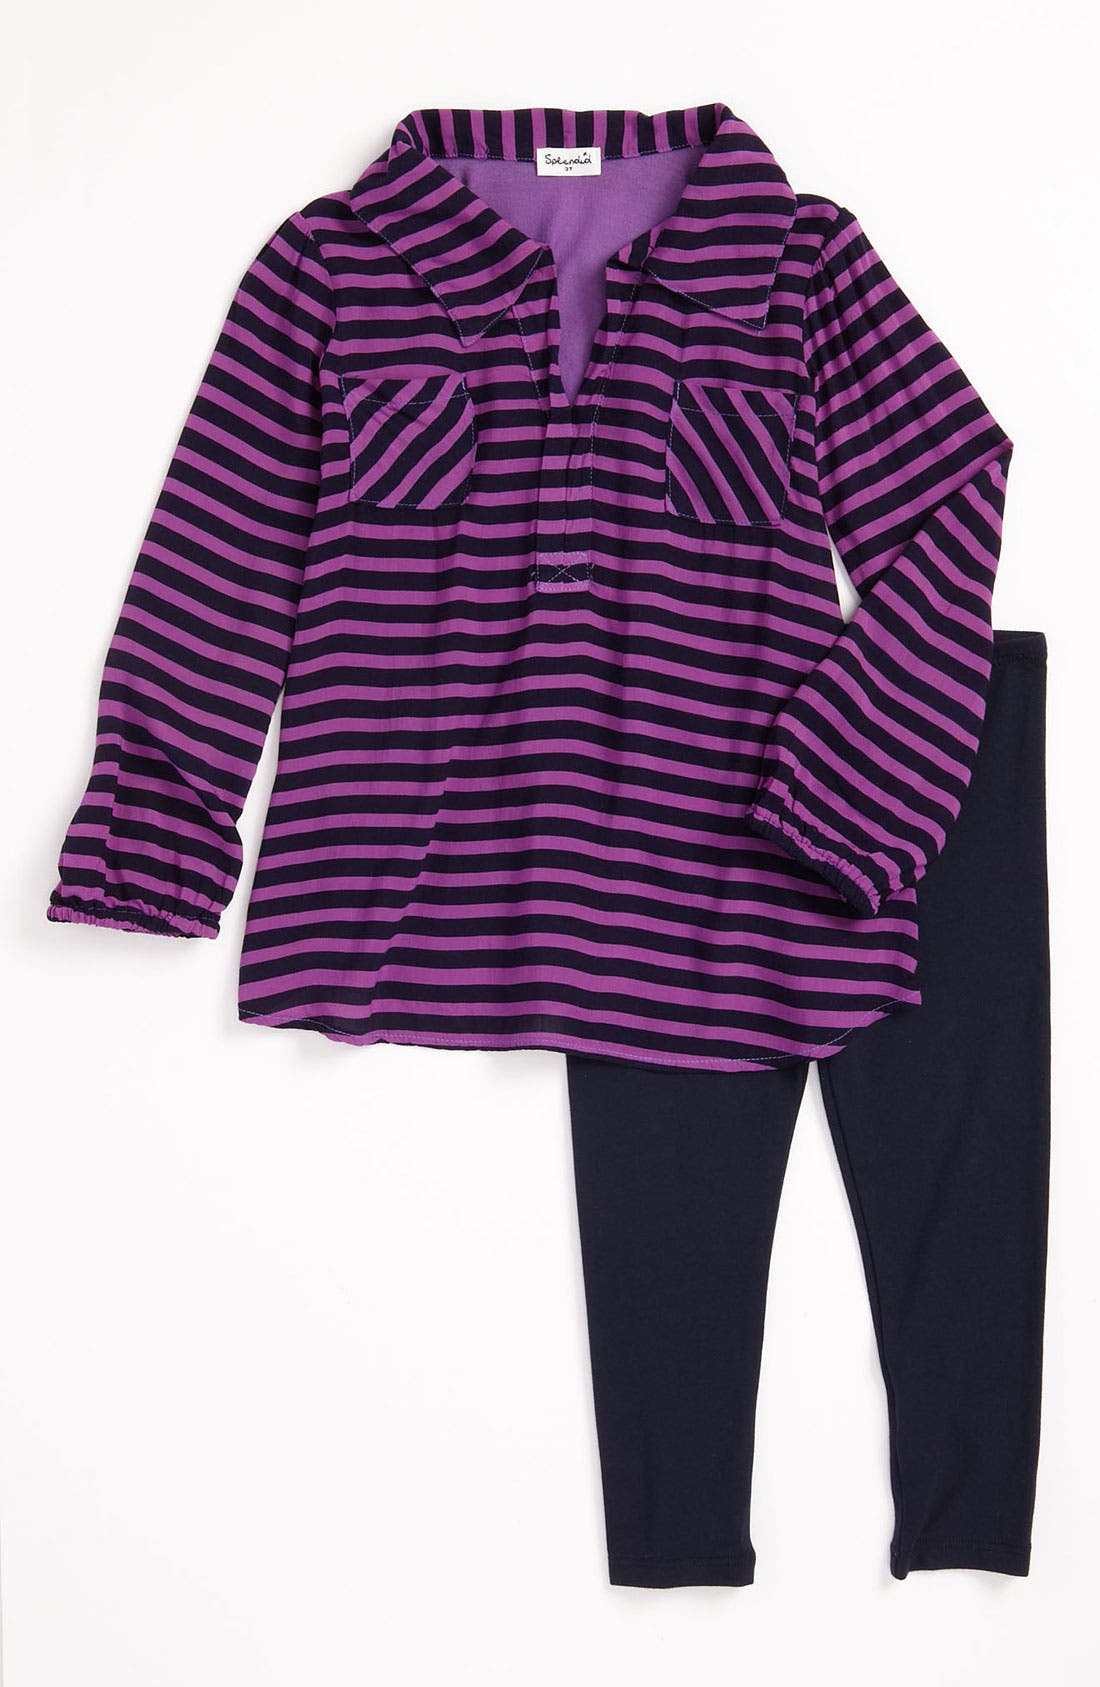 Alternate Image 1 Selected - Splendid 'Famous' Stripe Tunic & Leggings (Little Girls)